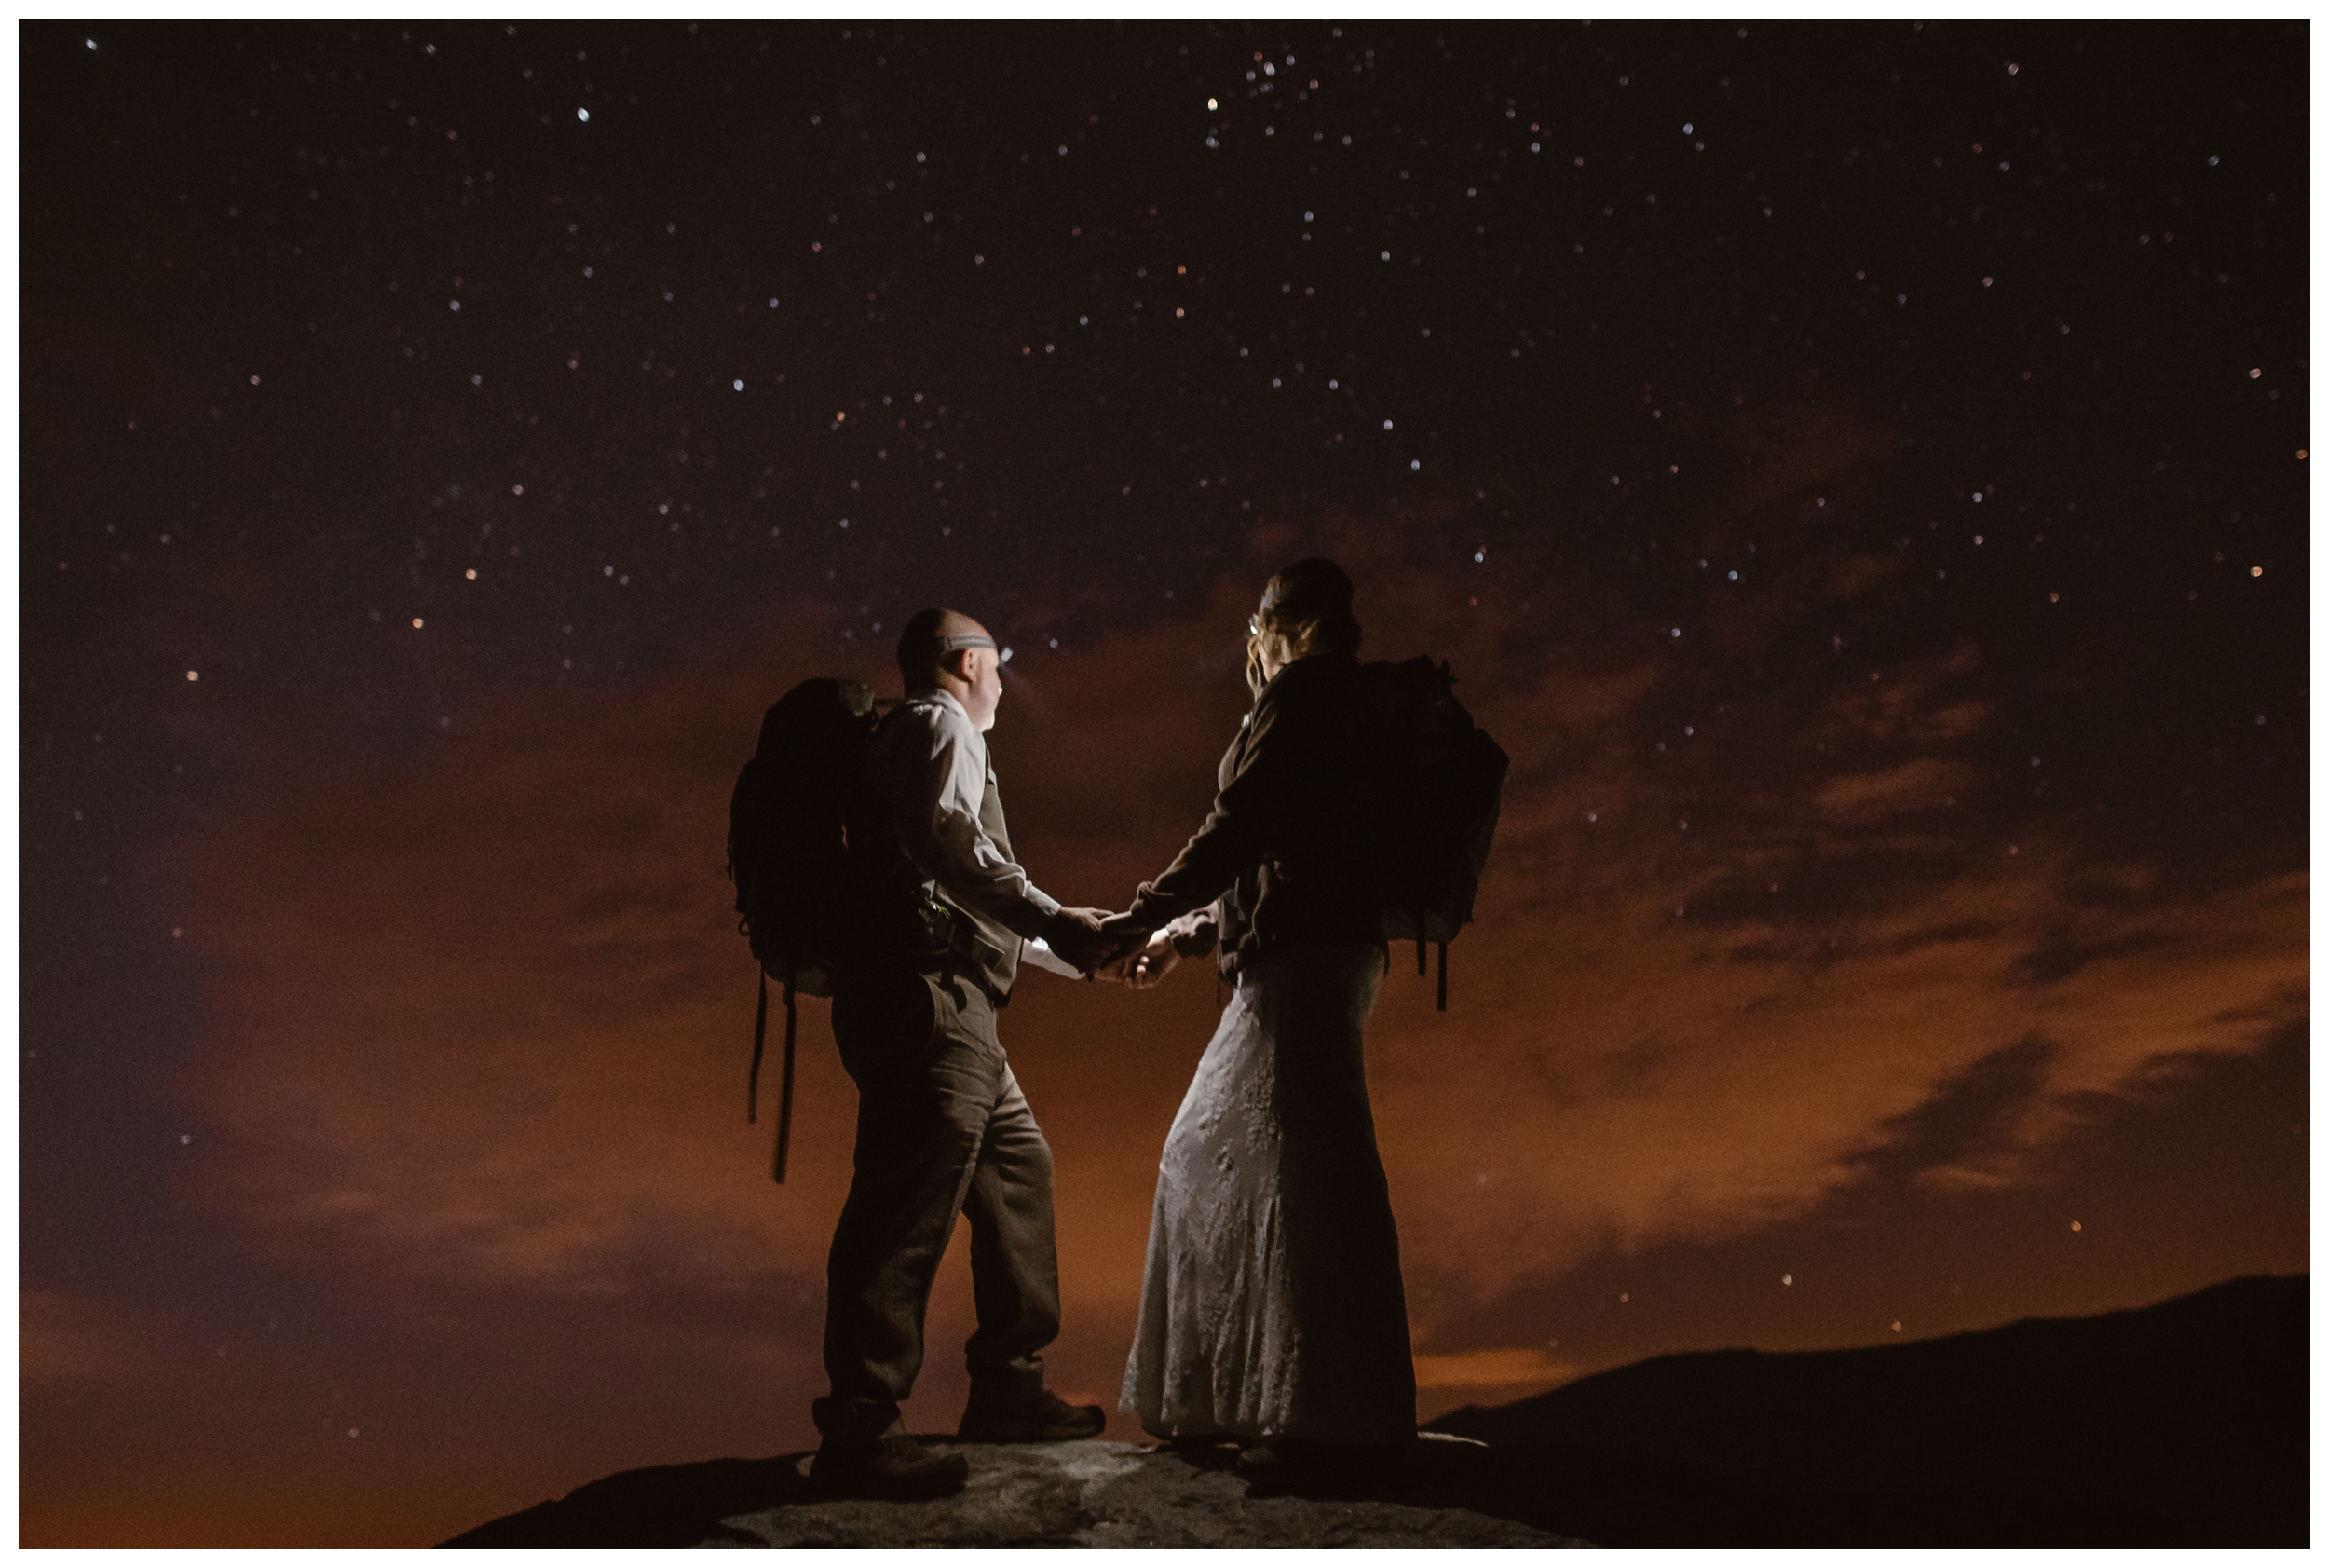 We believe in capturing your entire elopement day, from start to finish. This couple chose to elope on a mountain and hiked down in the dark after which resulted in this epic starry night sky shot from their elopement day. Photo by Maddie Mae, Adventure Instead Elopement Photographers.